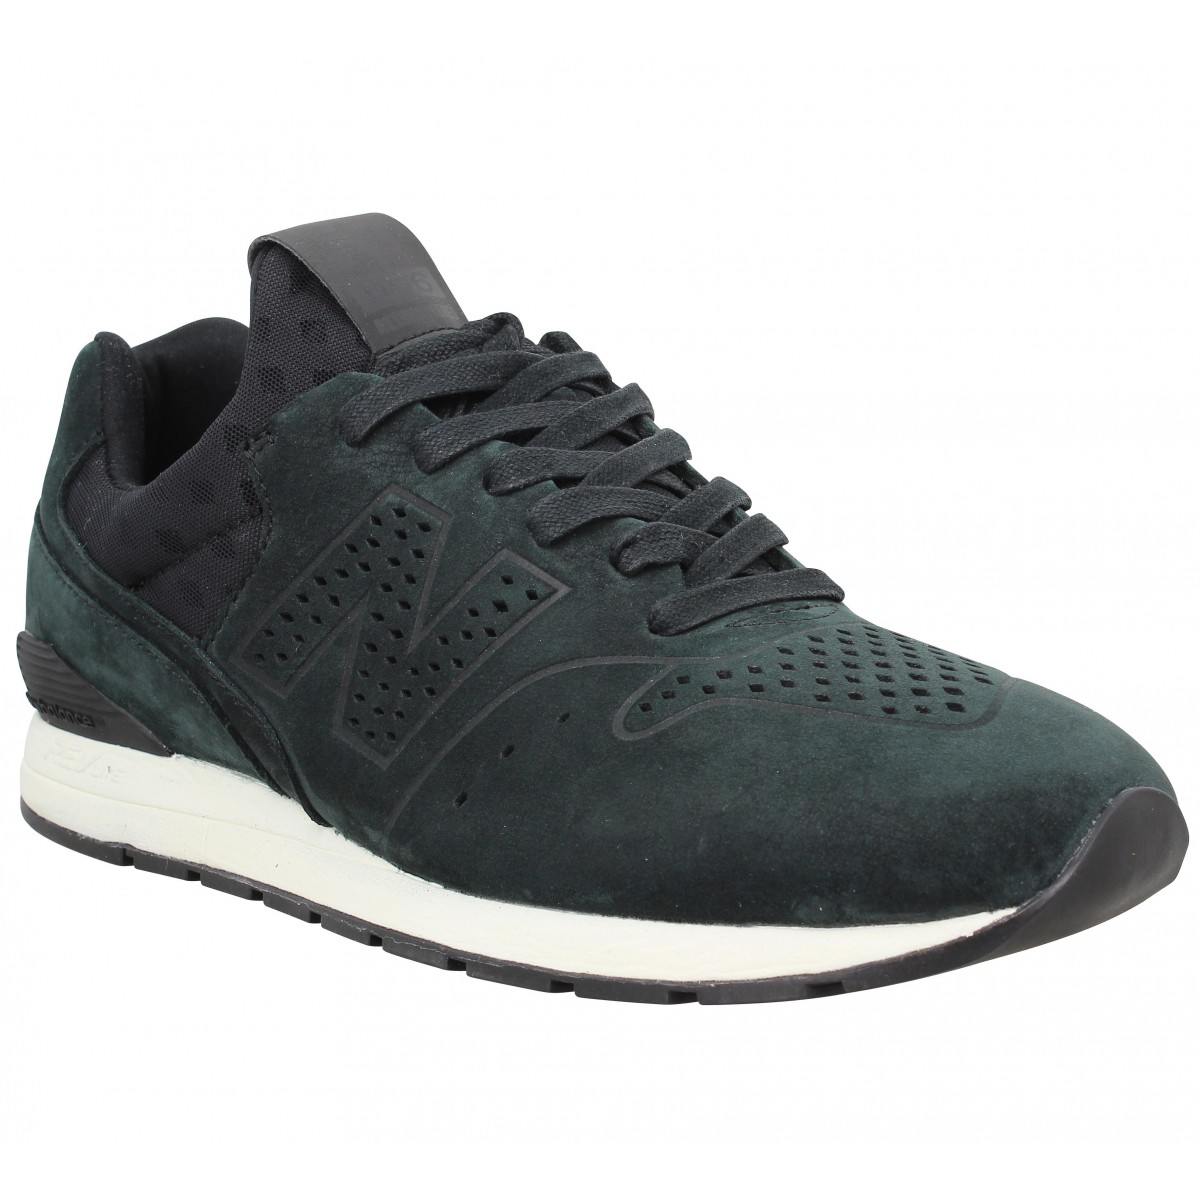 Baskets NEW BALANCE MRL 996 nubuck Noir